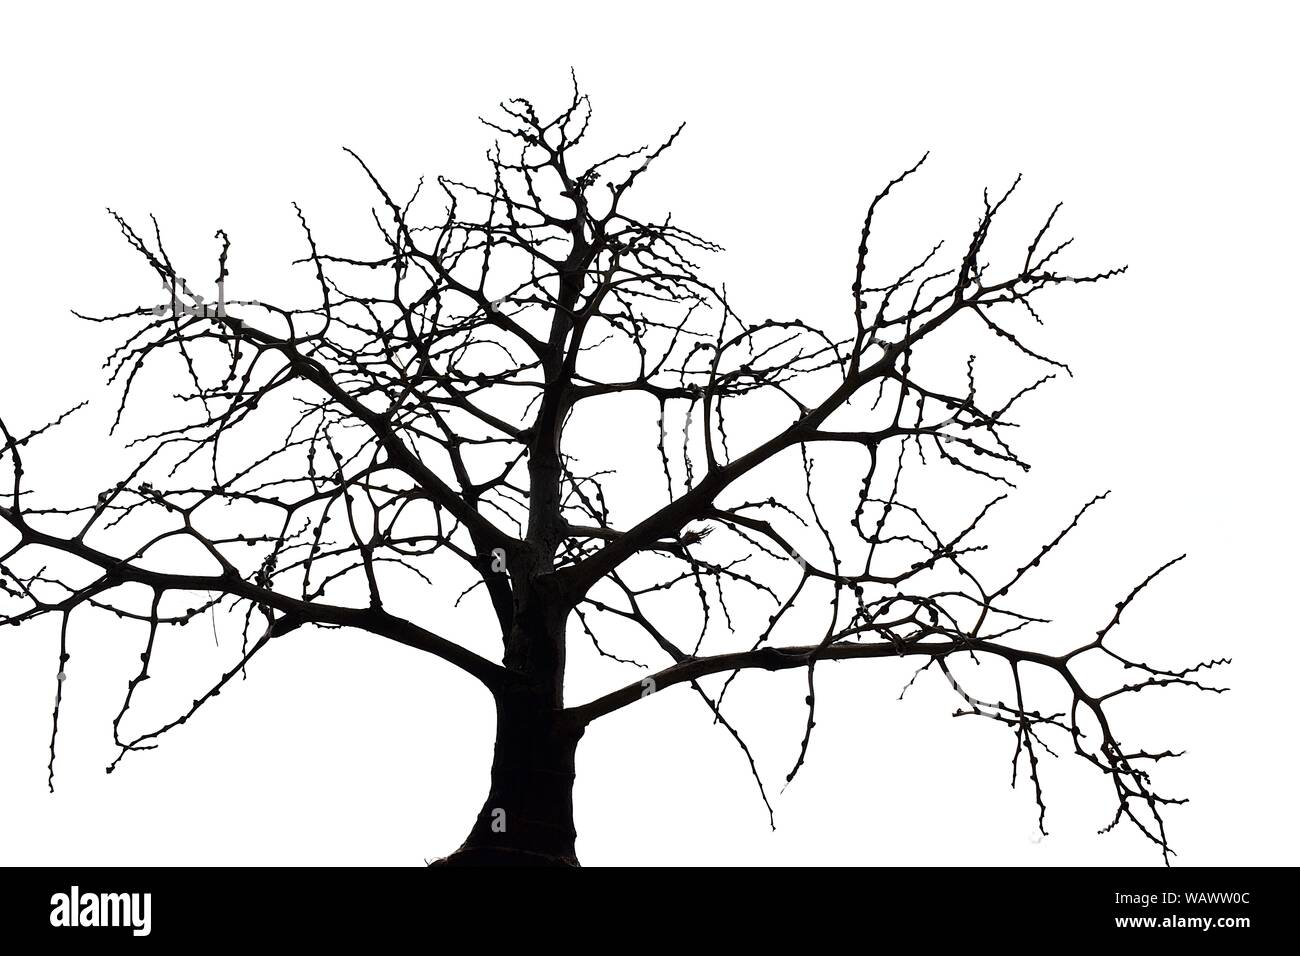 Scary Bare Black Tree Silhouette On White Background Branches Without Leaves Stock Photo Alamy